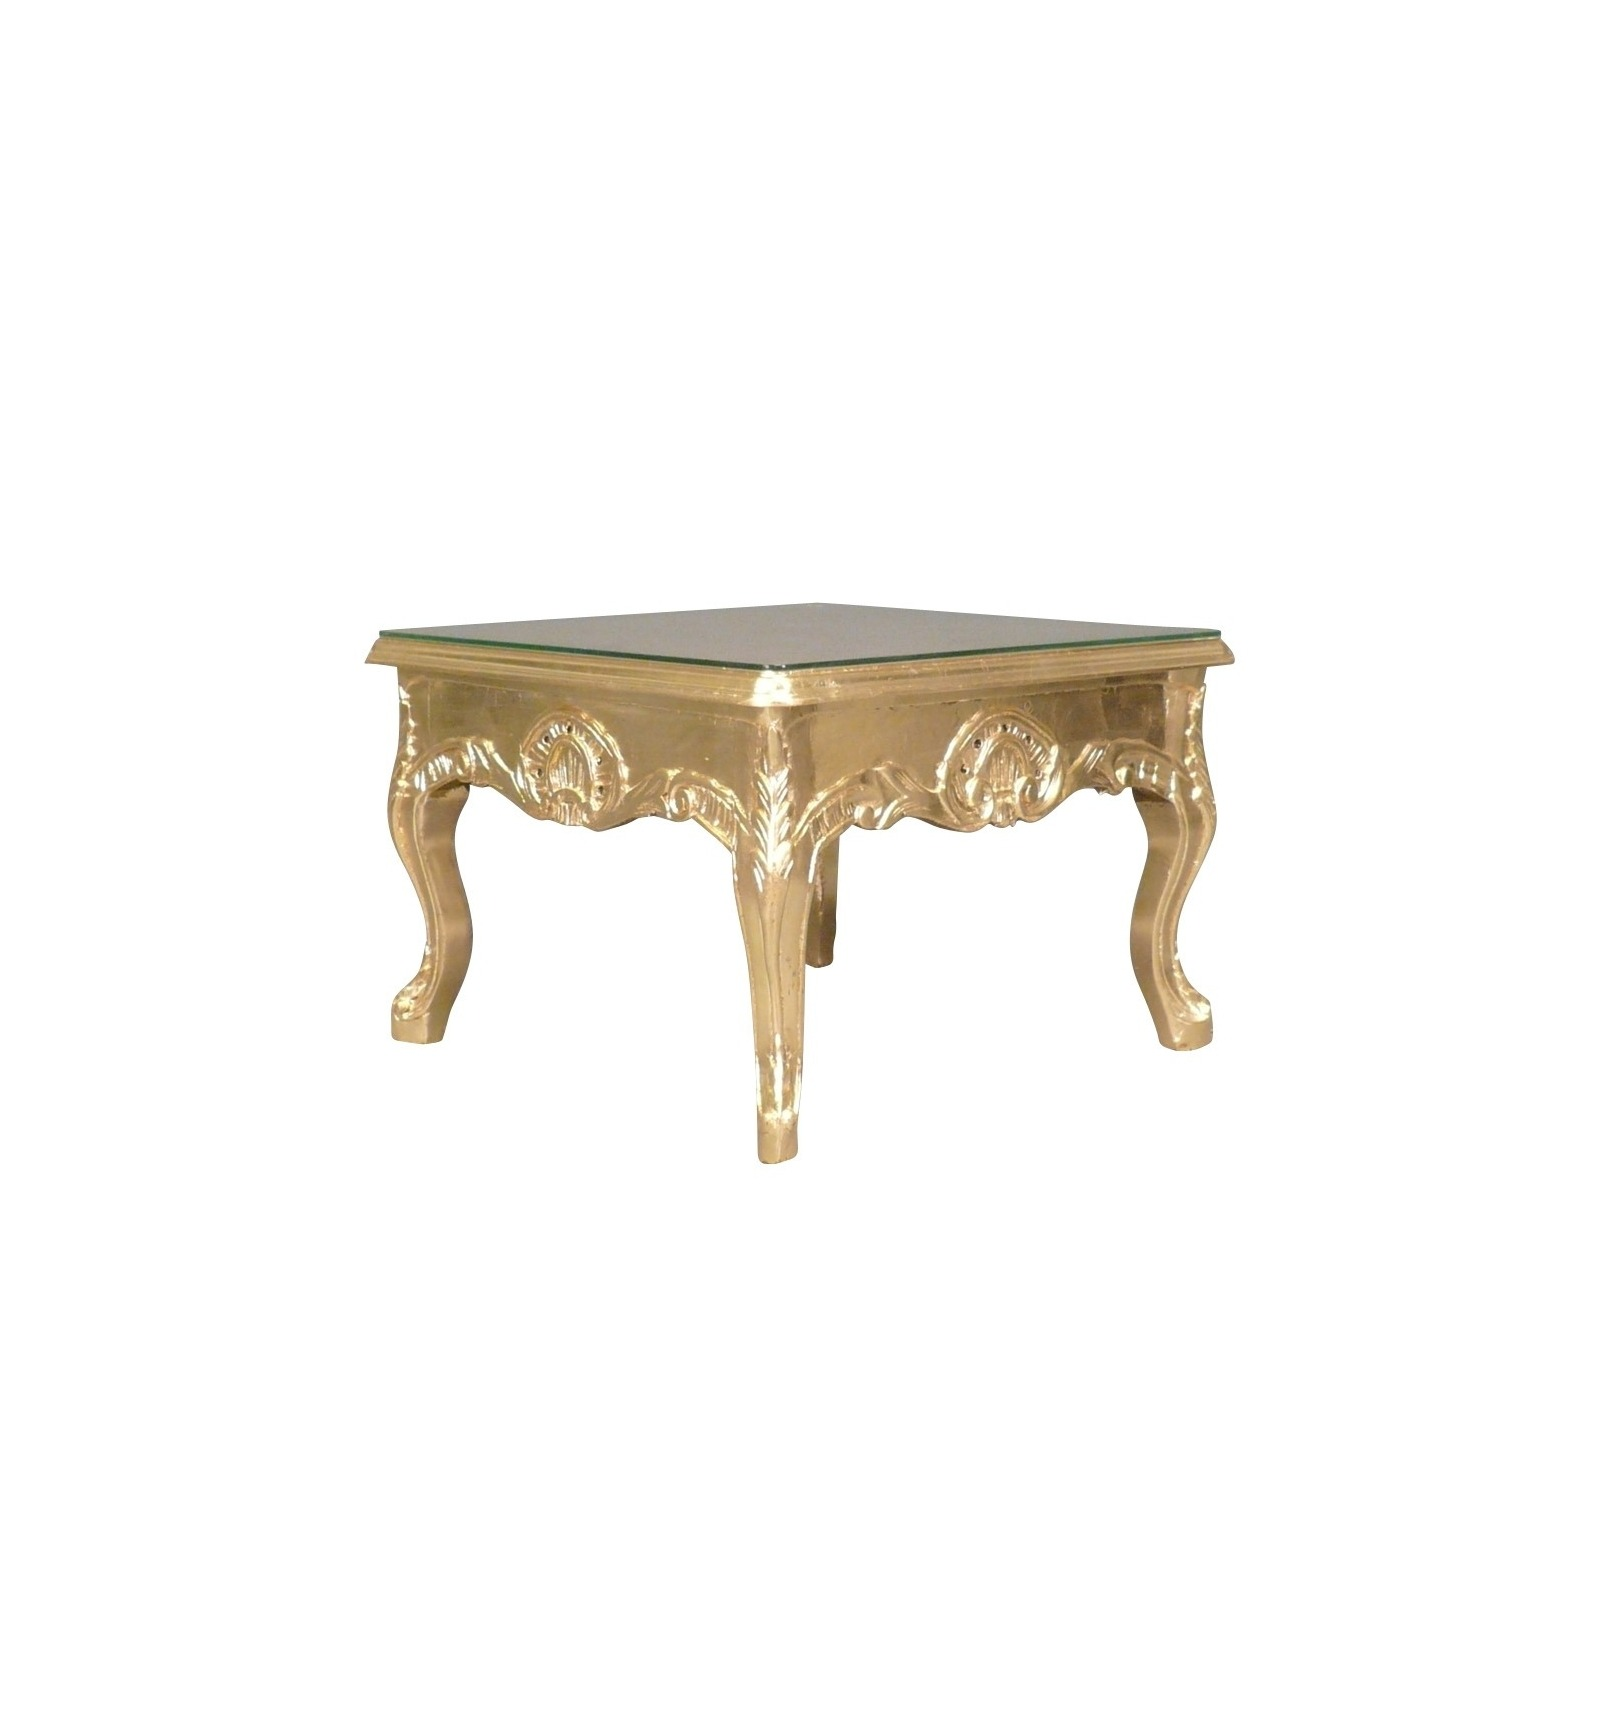 Htdeco - Table basse vitree ...